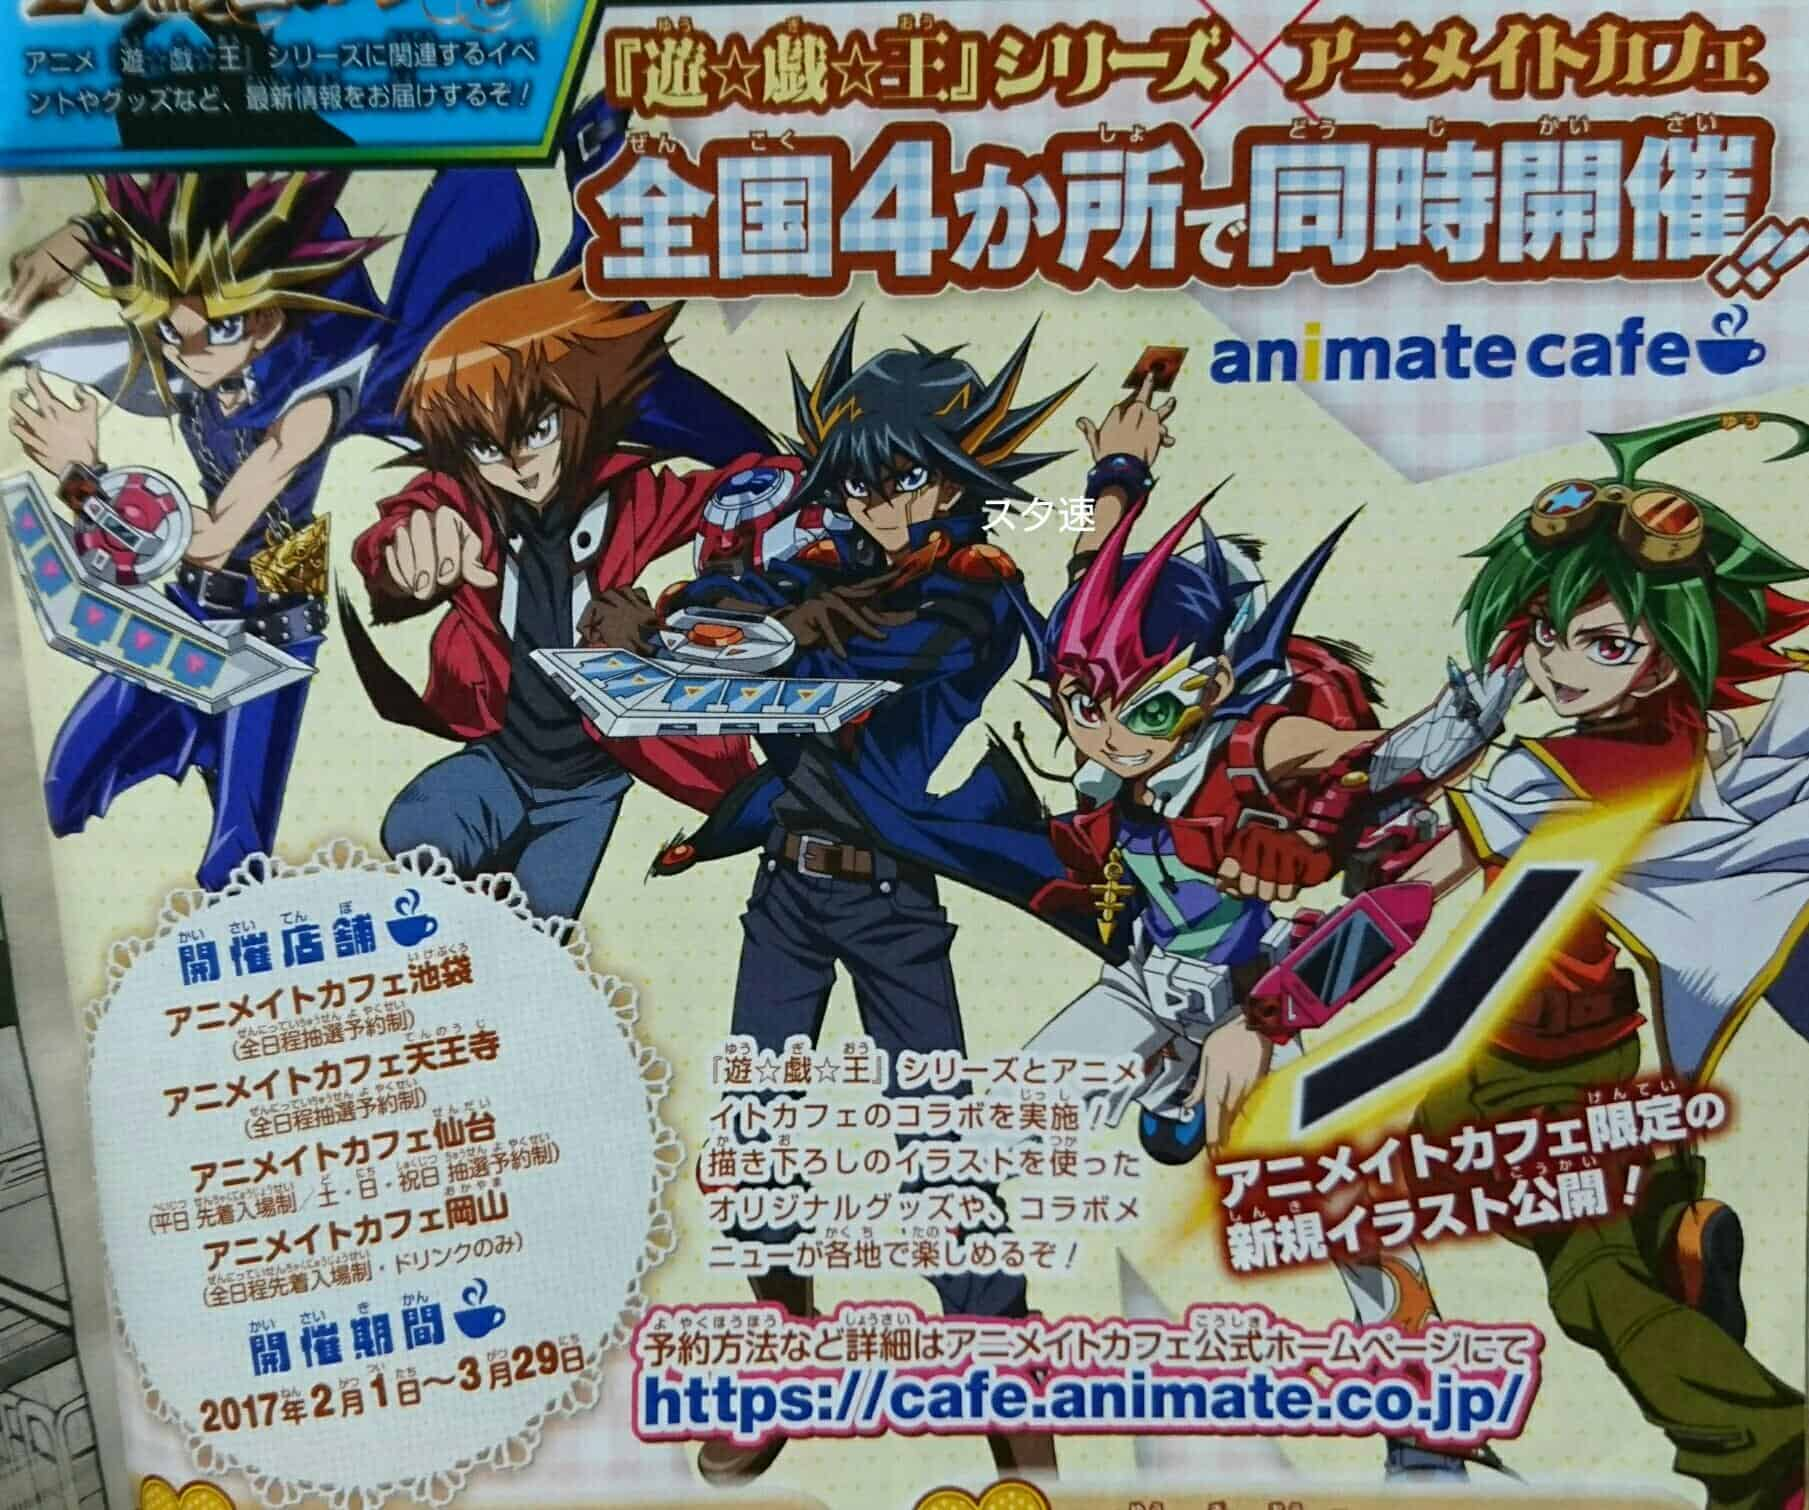 yu gi oh x animate cafe the organization